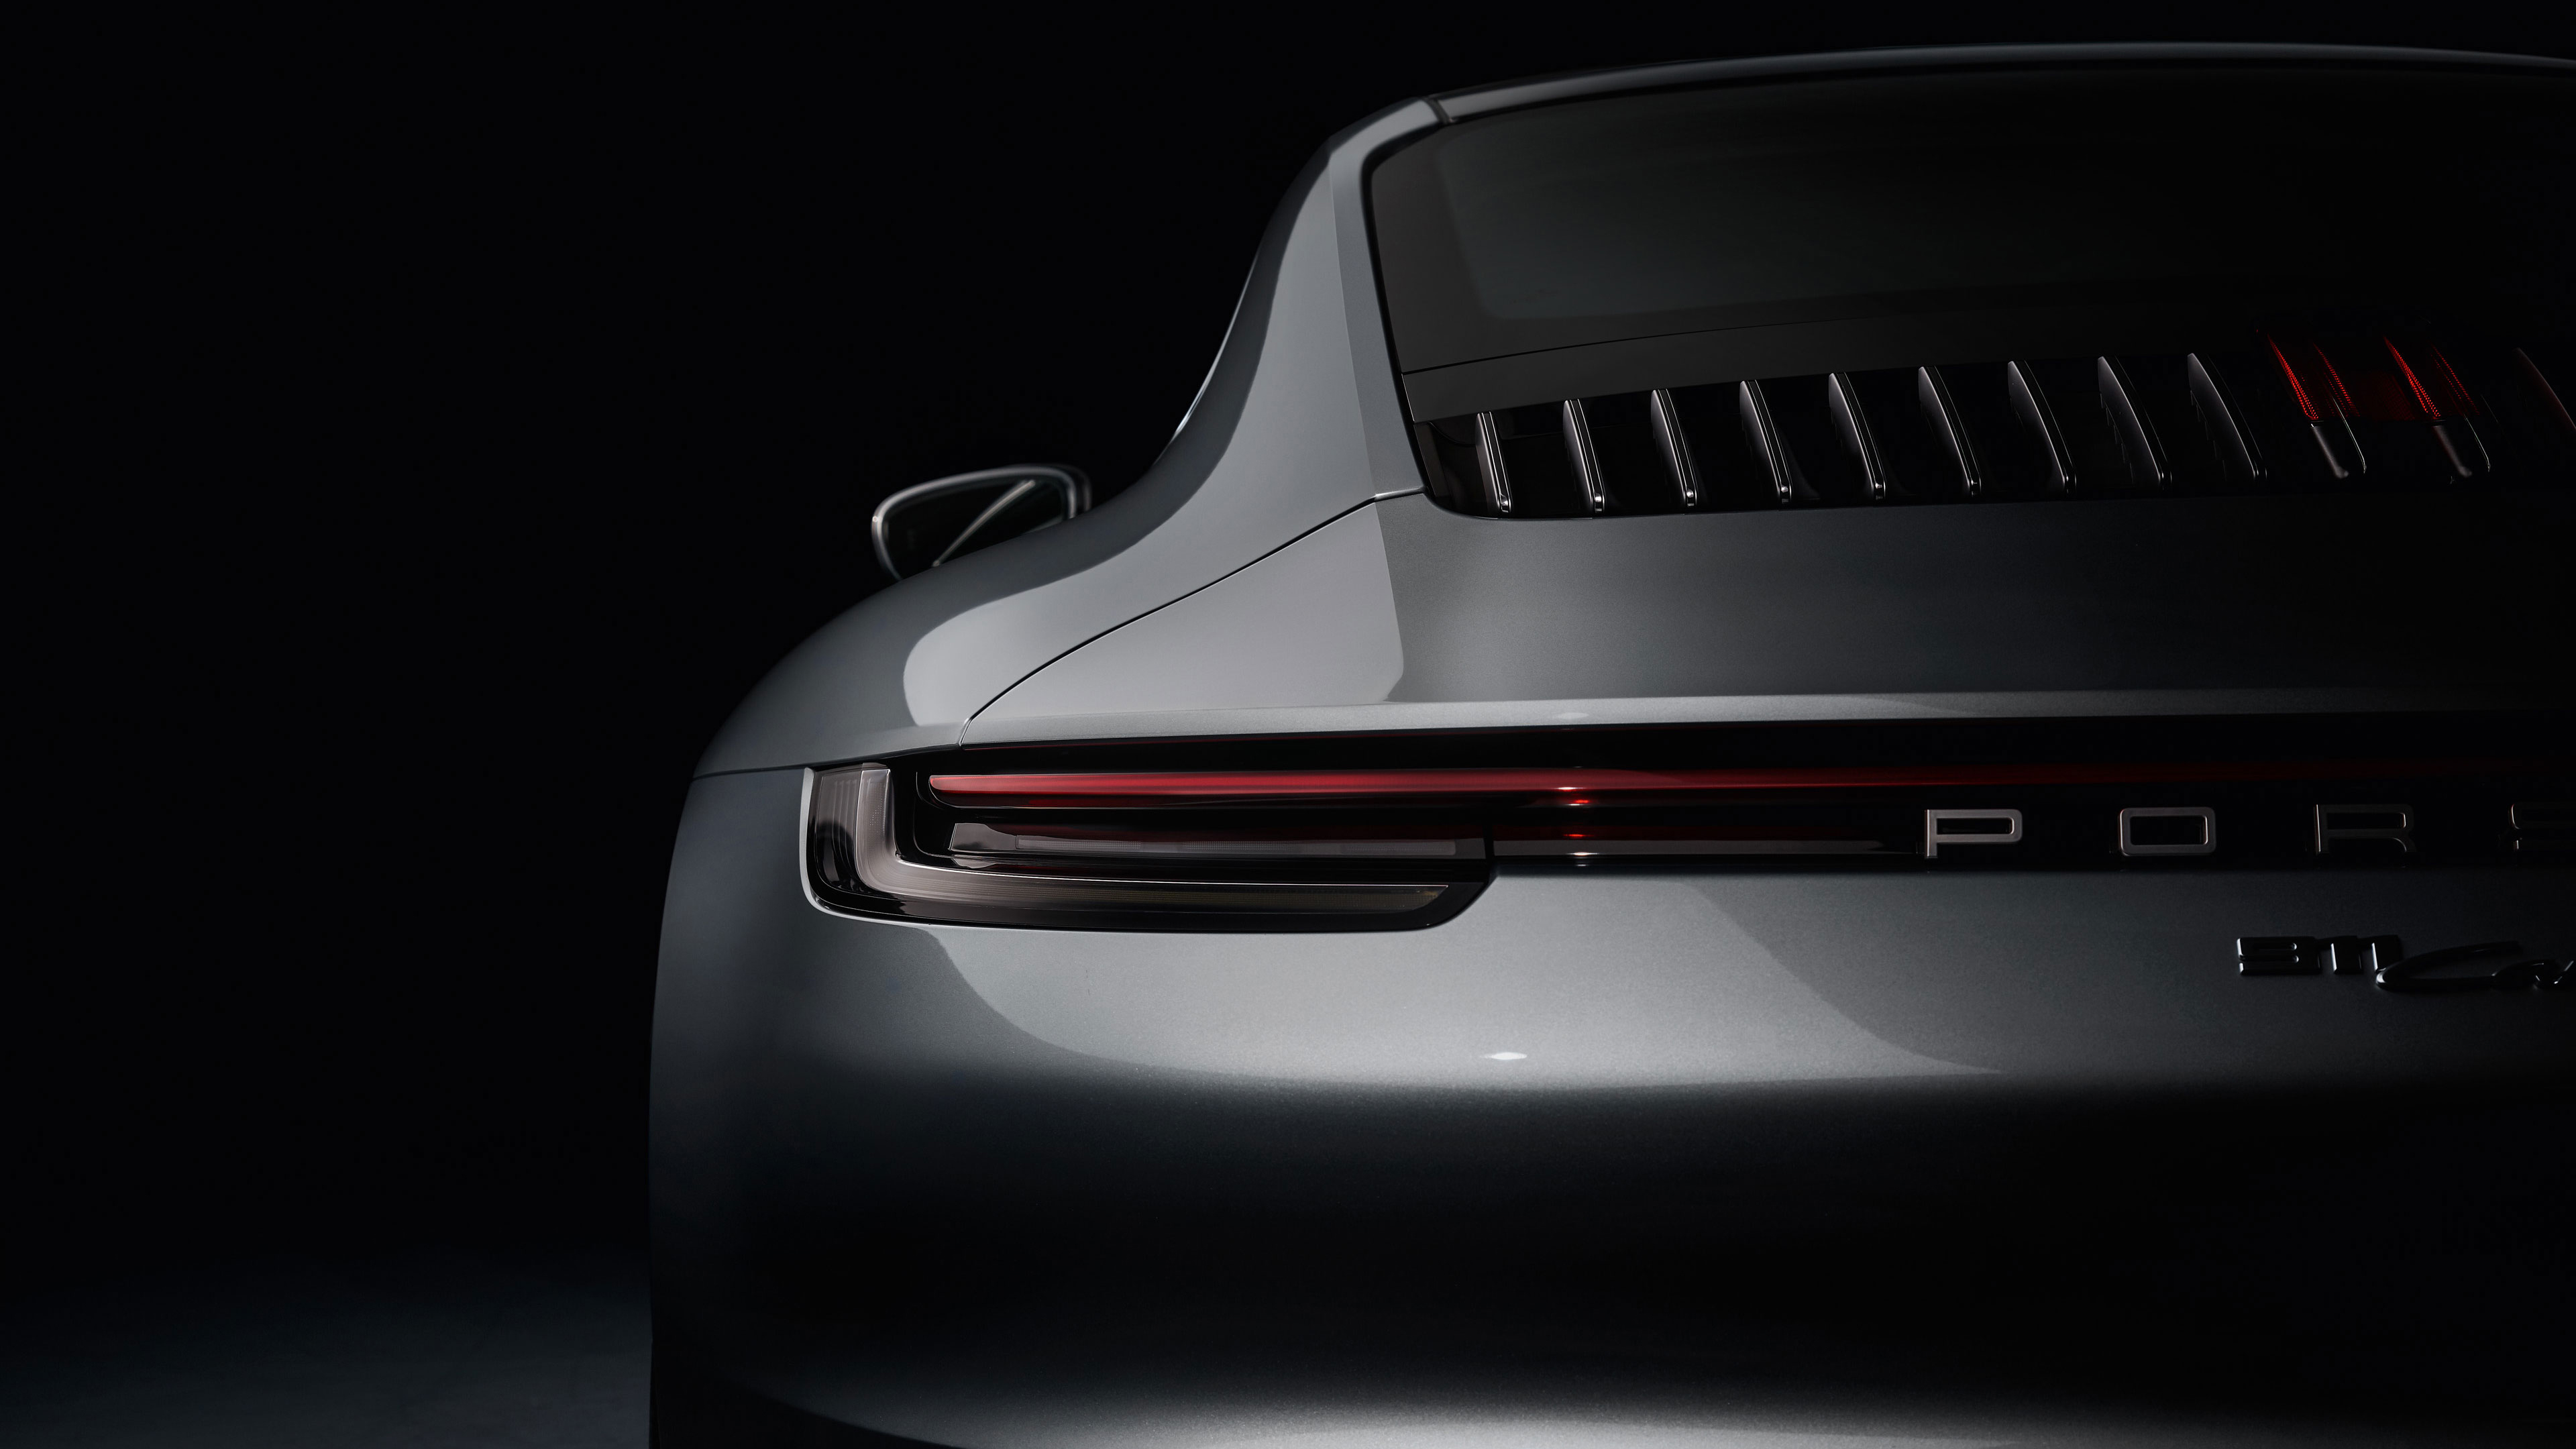 Porsche 911 Carrera S 2019 4k 4 Wallpaper Hd Car Wallpapers Id 11634